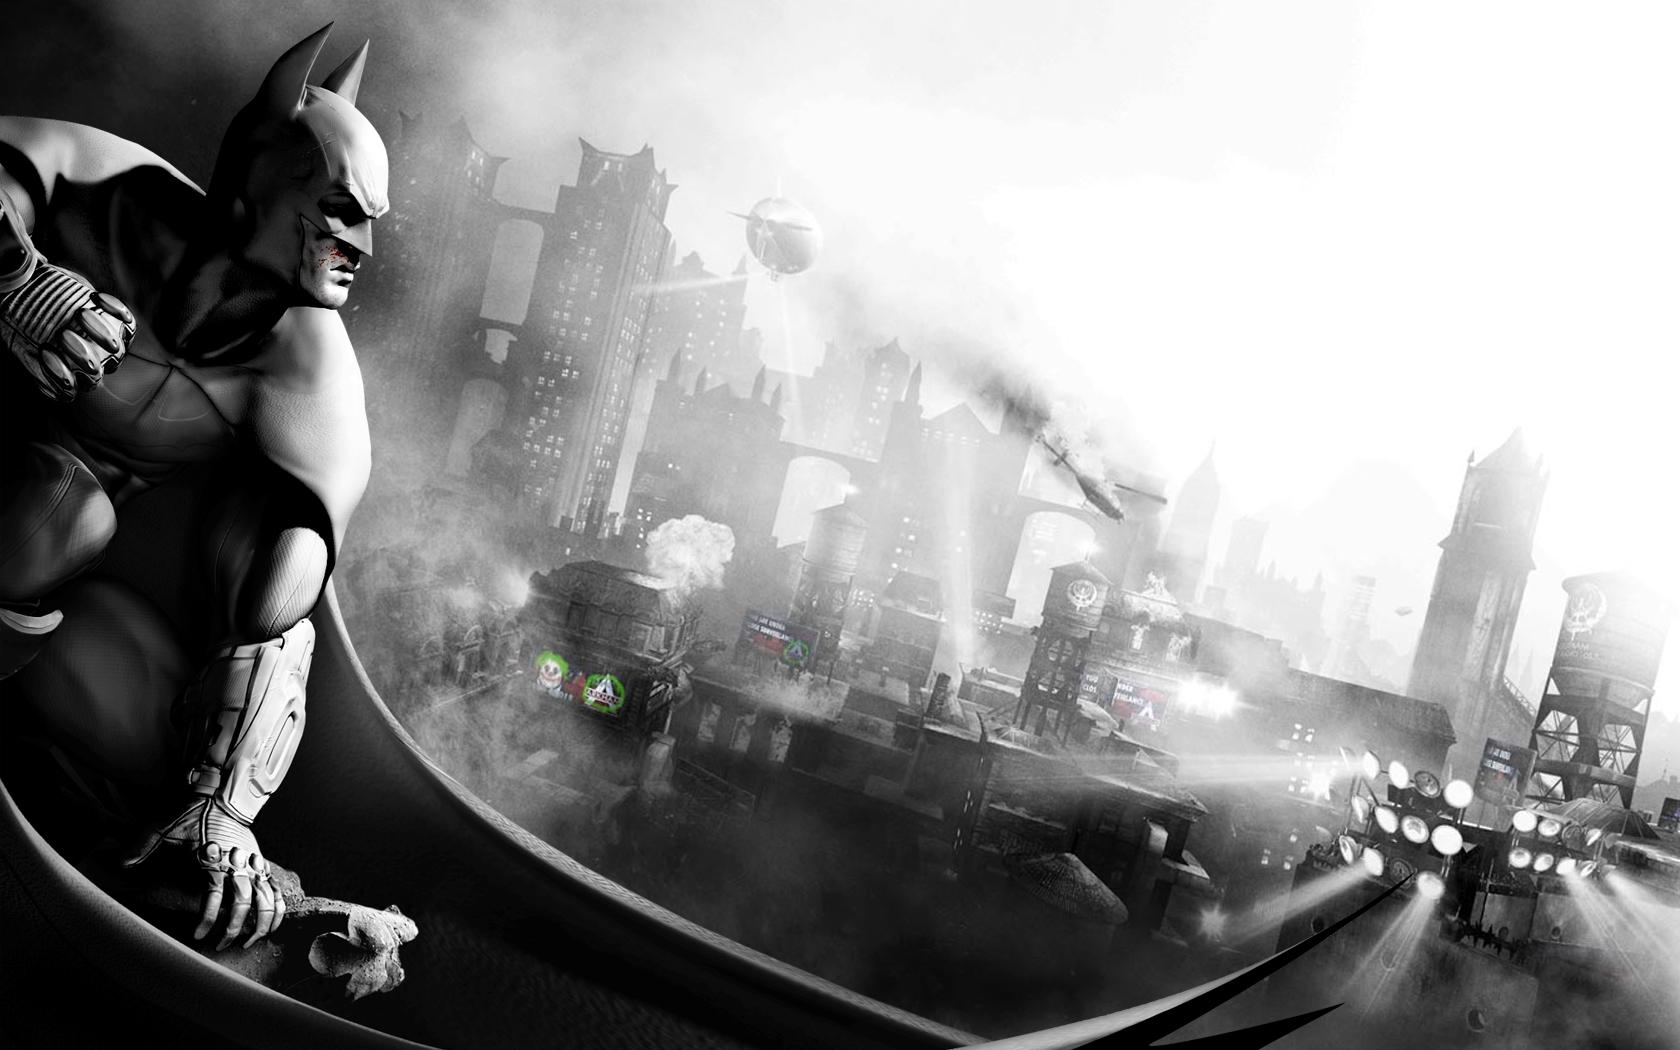 Batman Arkham City arrives for a 30 min demo on OnLive